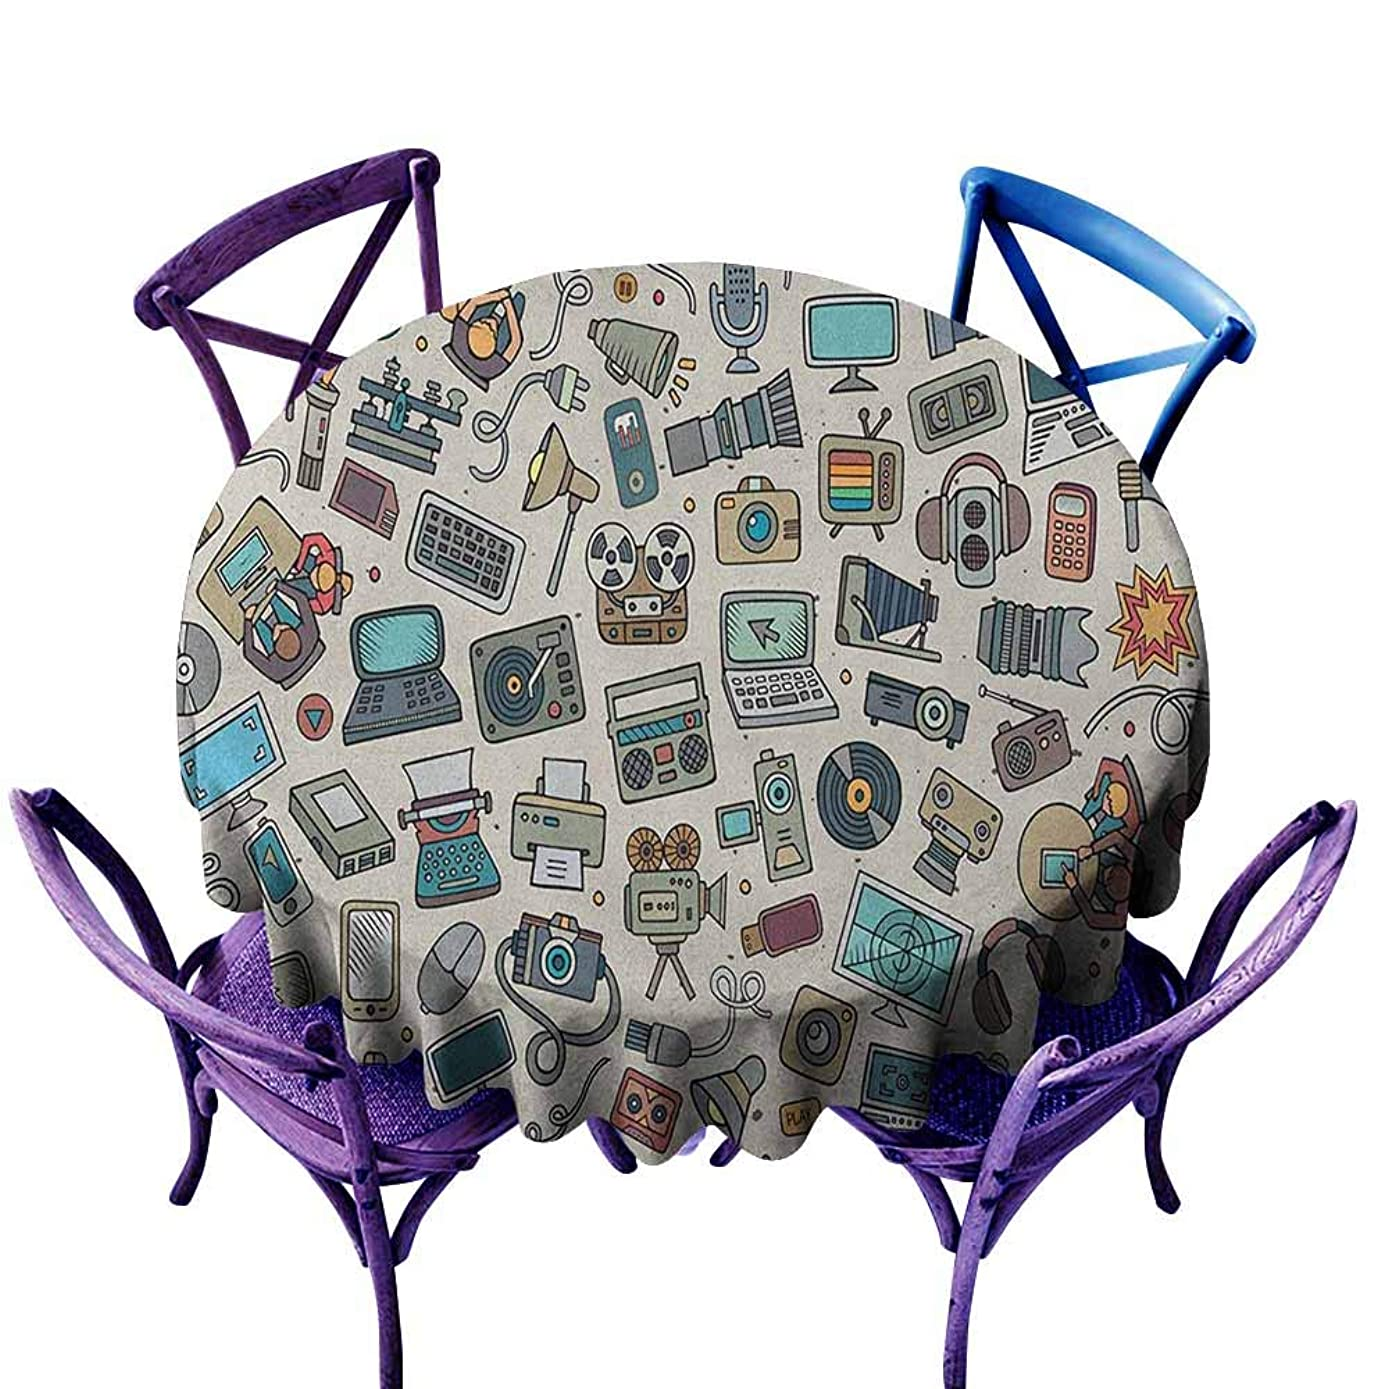 ONECUTE Round Solid Polyester Tablecloth,Doodle Complation of Various Office Gadgets Recorder Tv Laptop Monitor Tablet Switch Mouse,Party Decorations Table Cover Cloth,35 INCH Multicolor